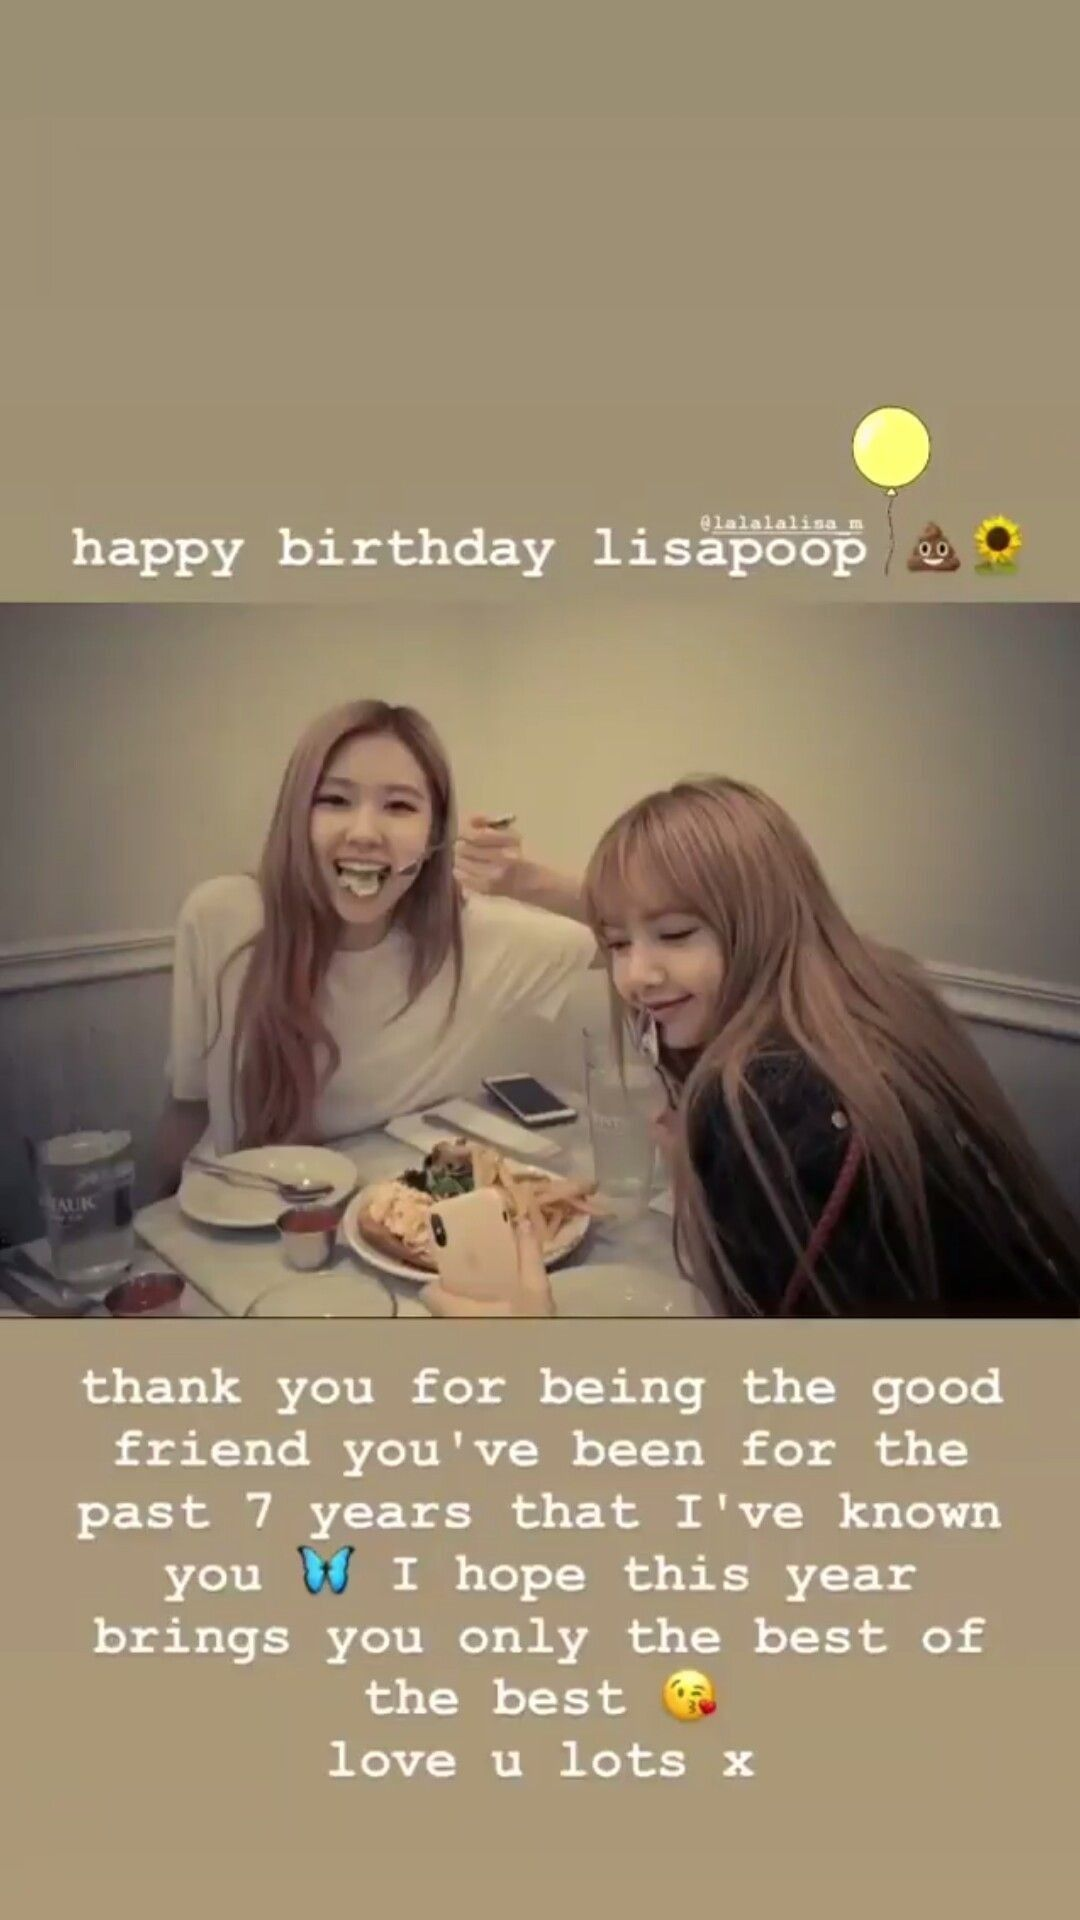 Rosé Instagram Story Update With Lisa Birthday wishes